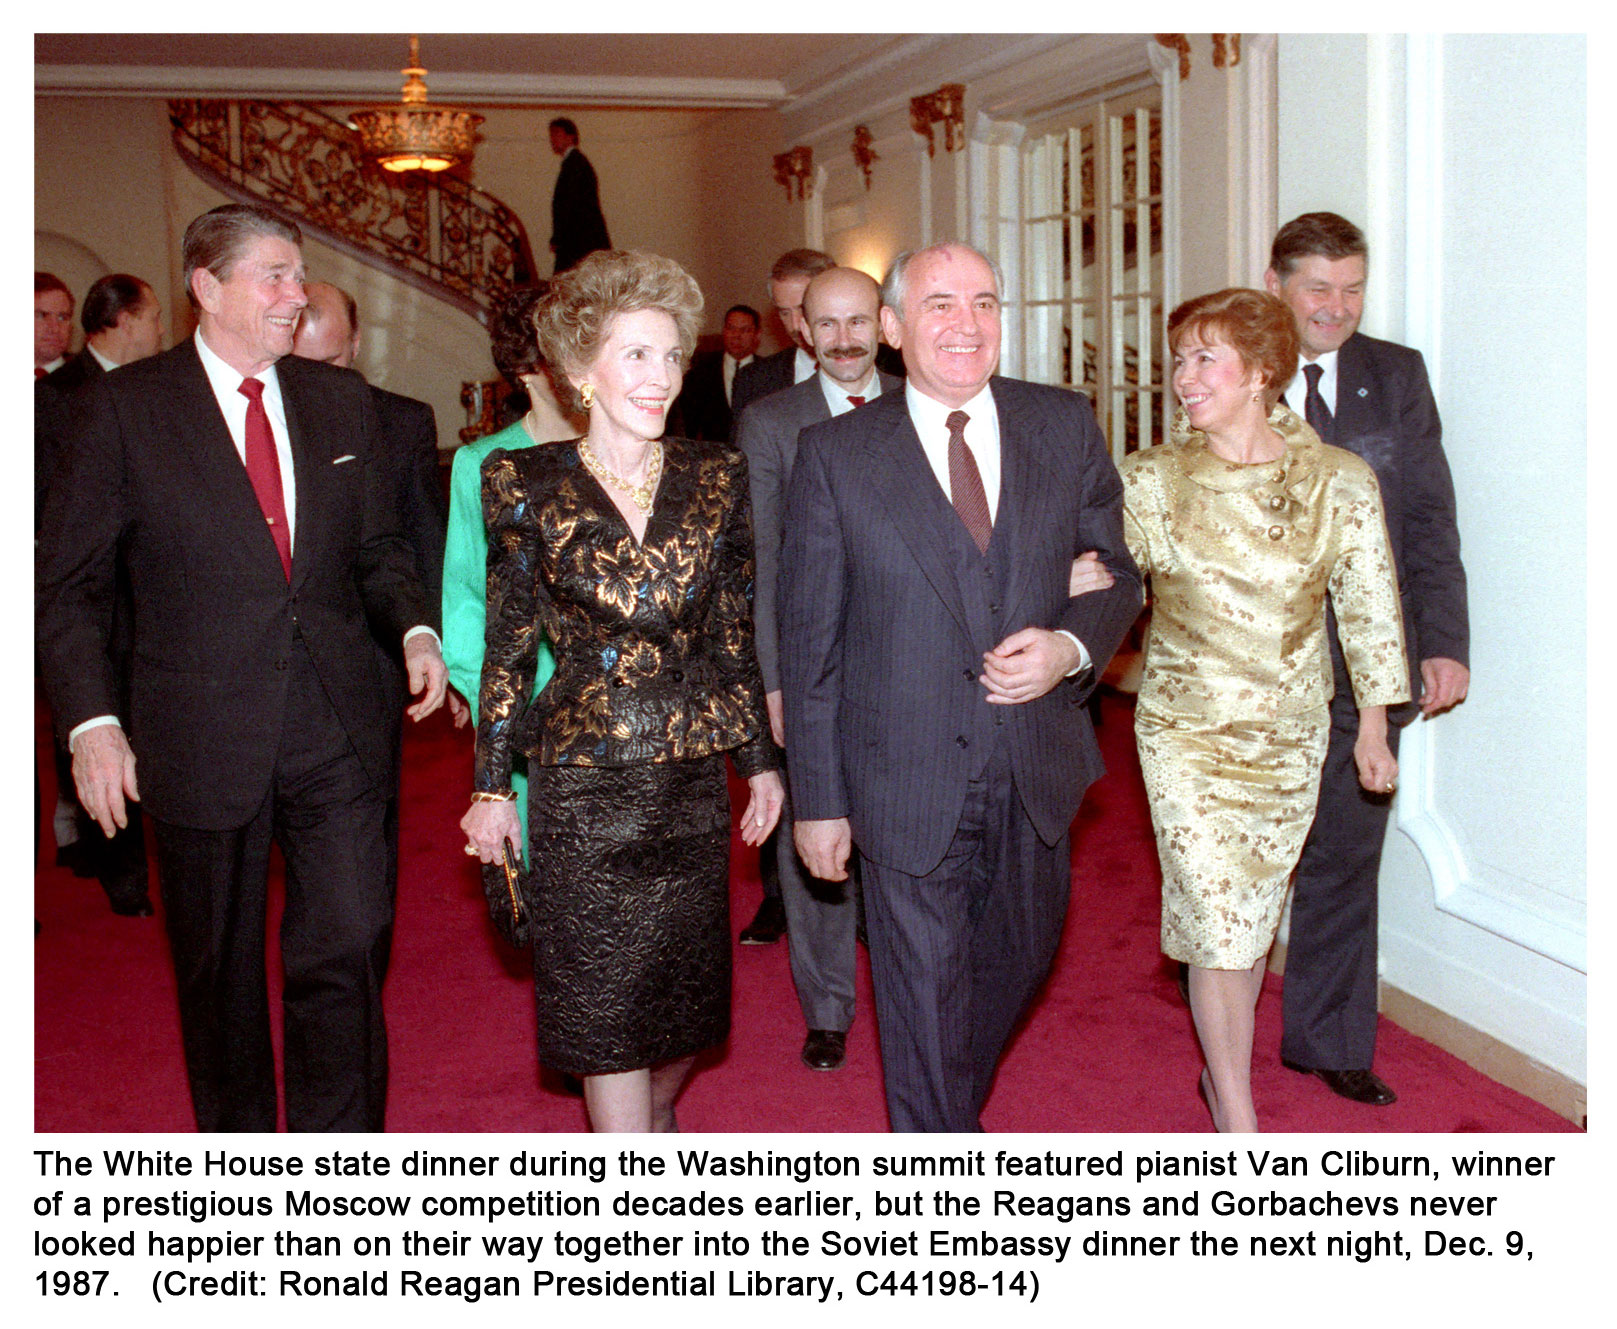 The White House state                                         dinner during the Washington                                         summit featured pianist Van                                         Cliburn, winner of a prestigious                                         Moscow competition decades                                         earlier, but the Reagans and                                         Gorbachevs never looked happier                                         than on their way together into                                         the Soviet Embassy dinner the                                         next night, Dec. 9, 1987.                                         (Credit: Ronald Reagan                                         Presidential Library,                                         C44198-14)